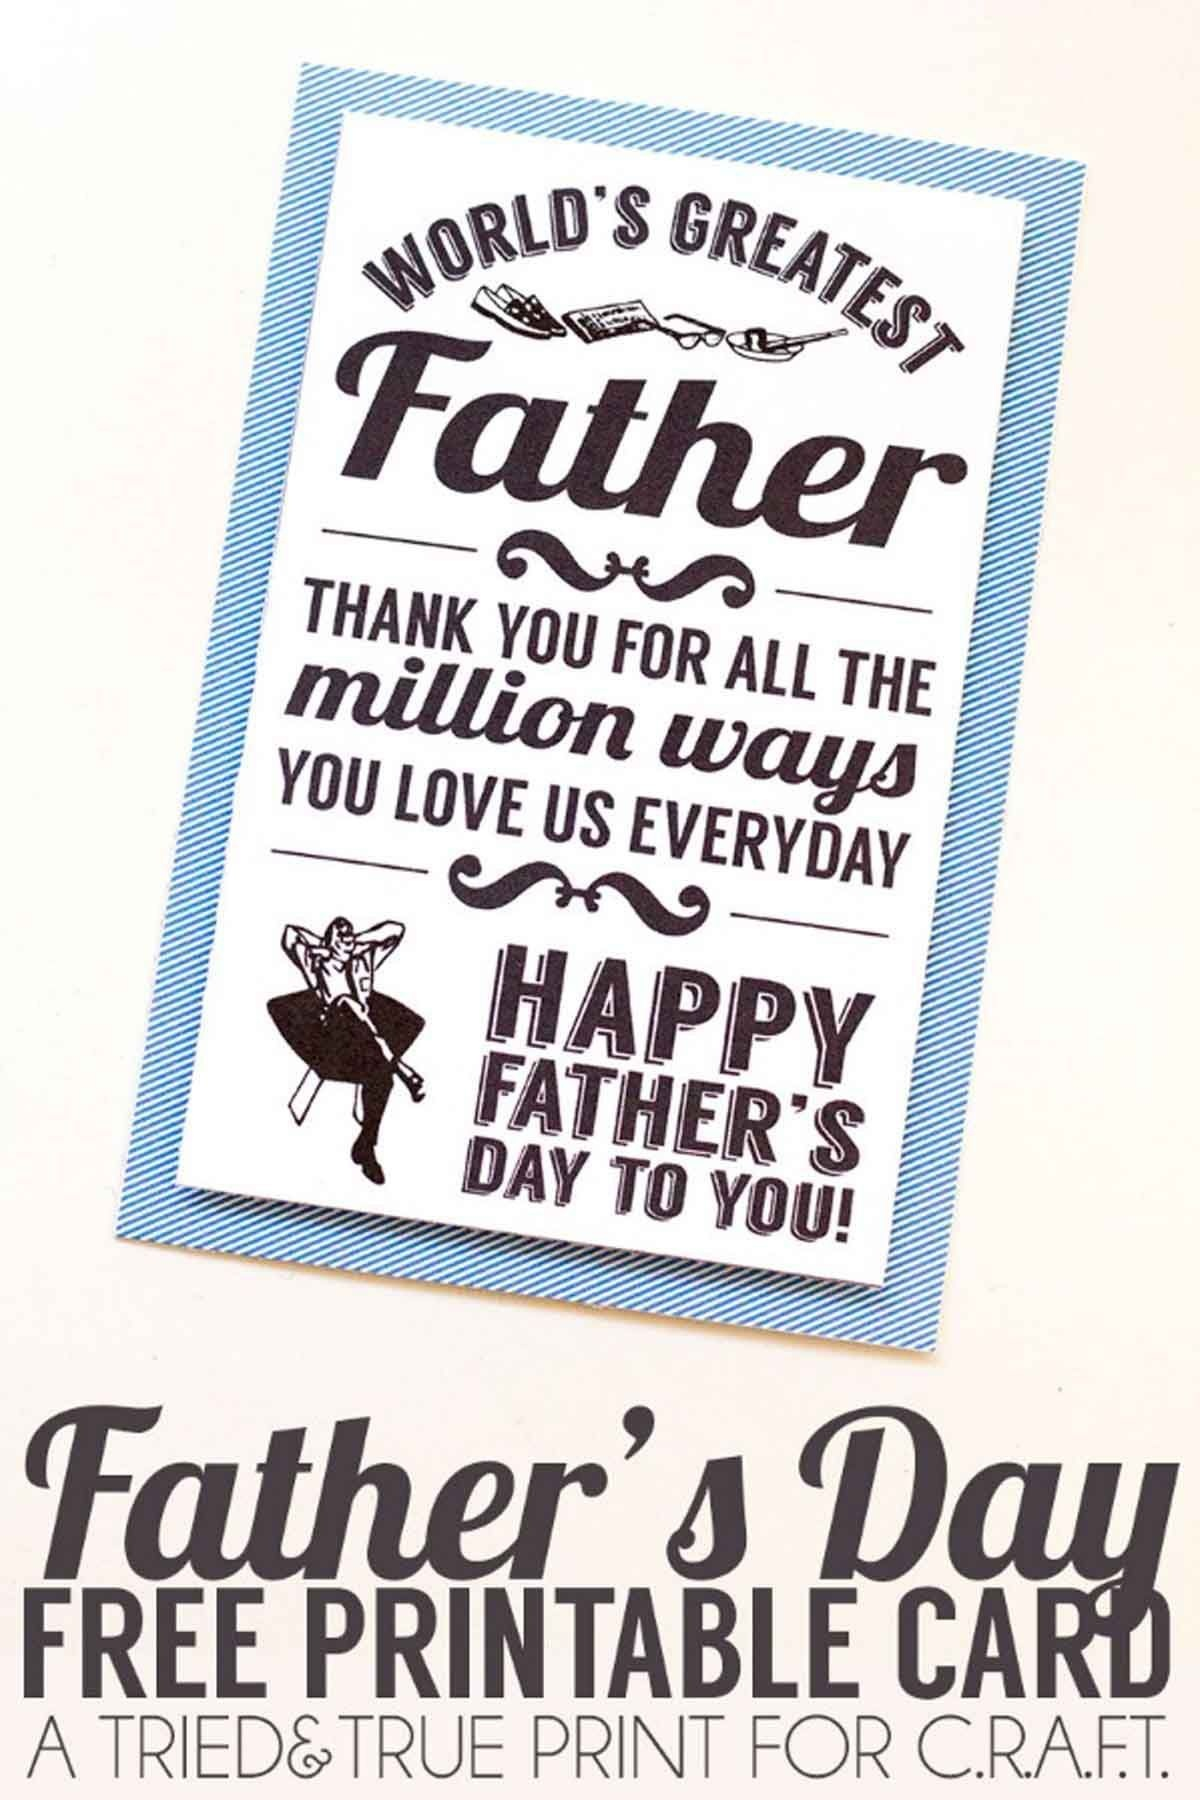 Print One Of These Free Father's Day Cards If You Forgot To Buy One - Free Printable Father's Day Card From Wife To Husband